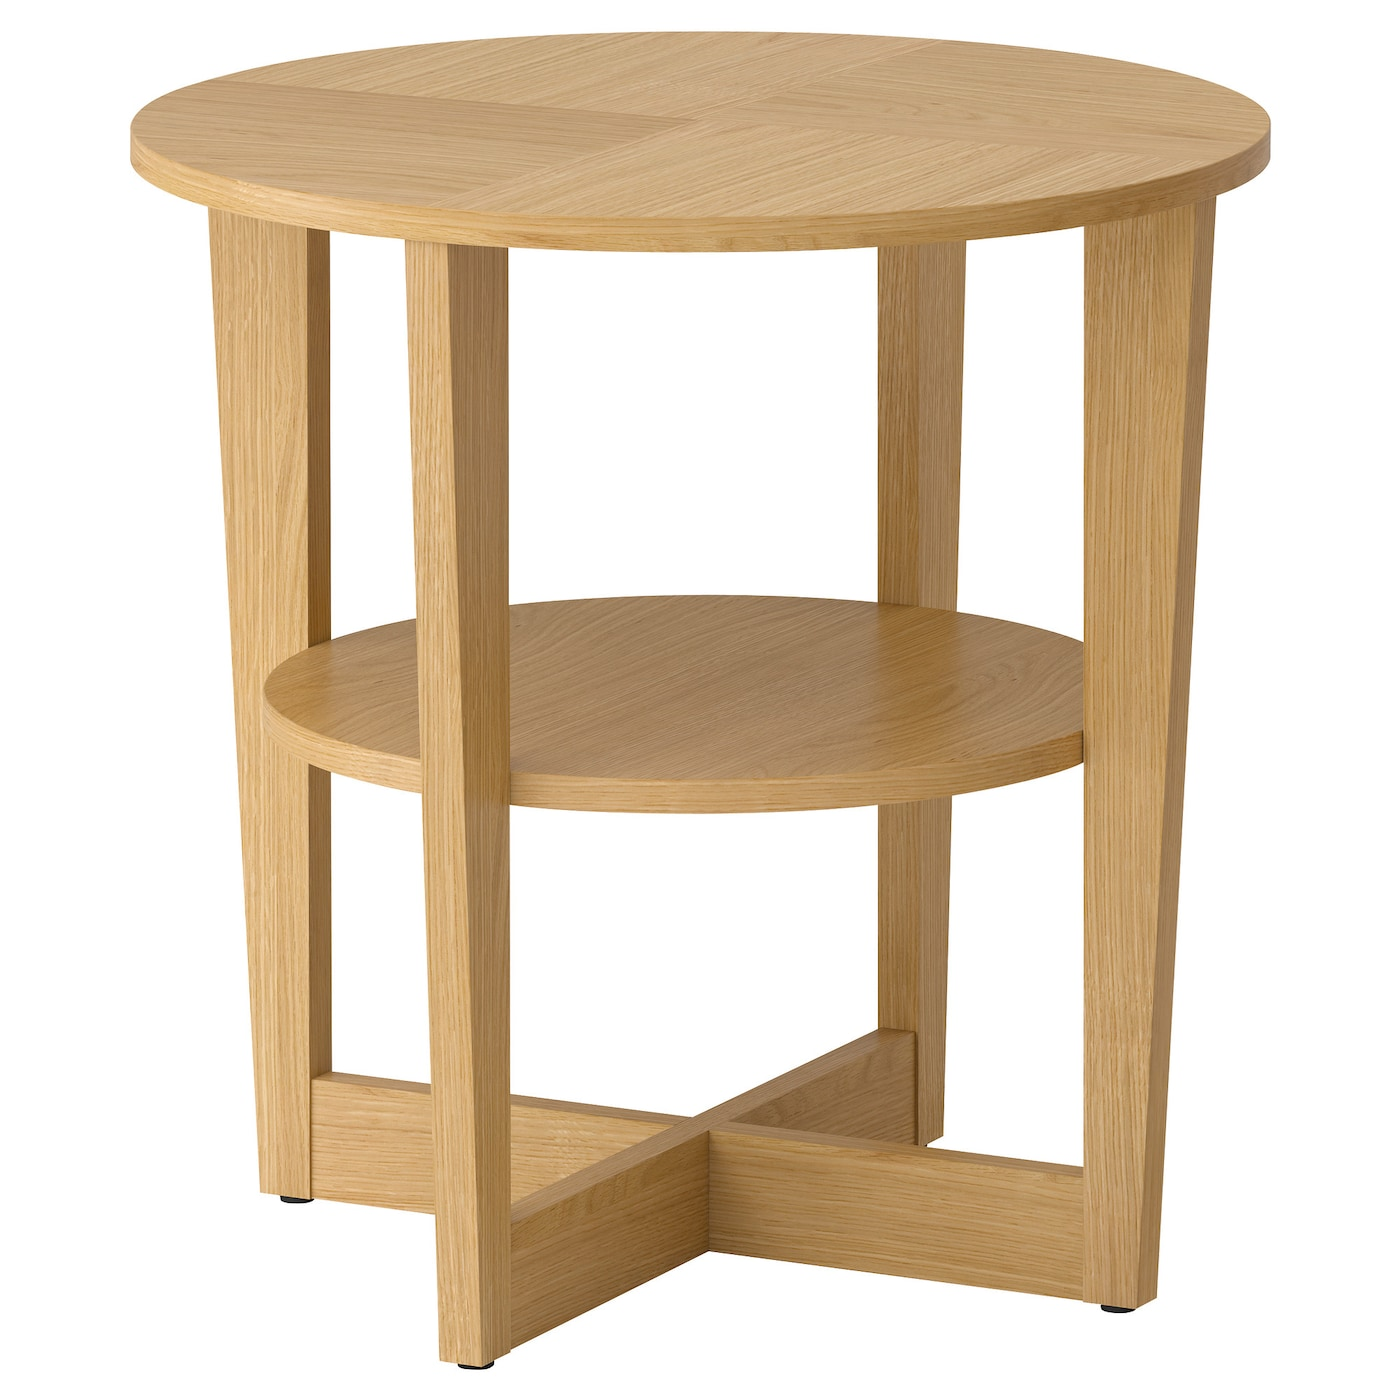 Very Slim Bedside Table occasional tables - tray, storage & window tables | ikea